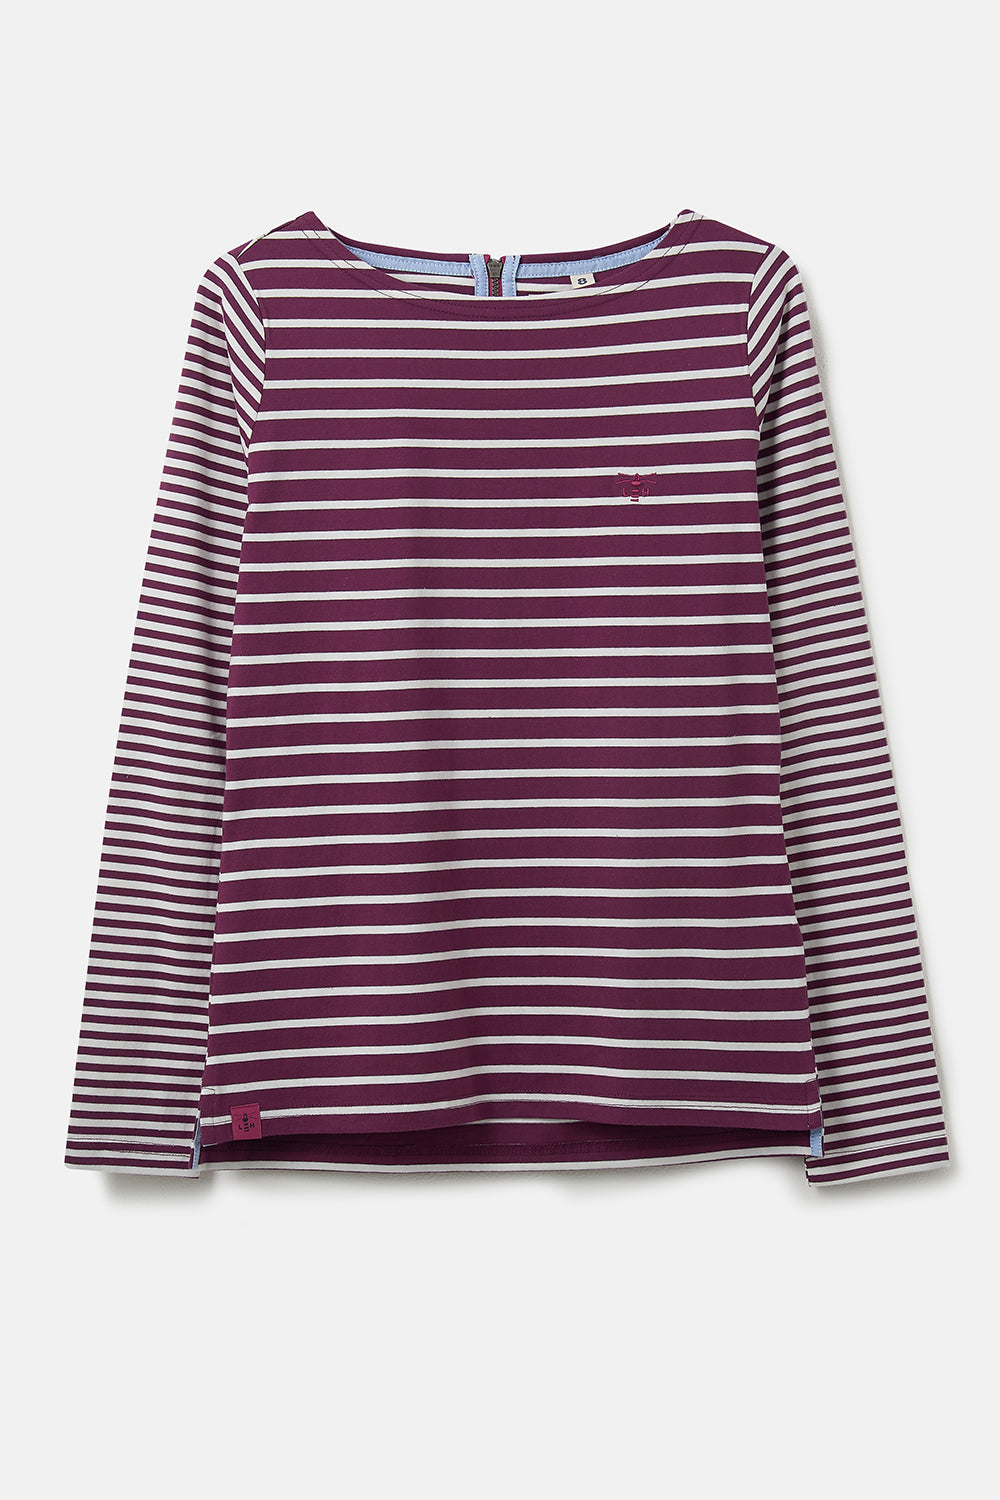 Causeway Breton Top. Long Sleeve Plum Stripes | Lighthouse